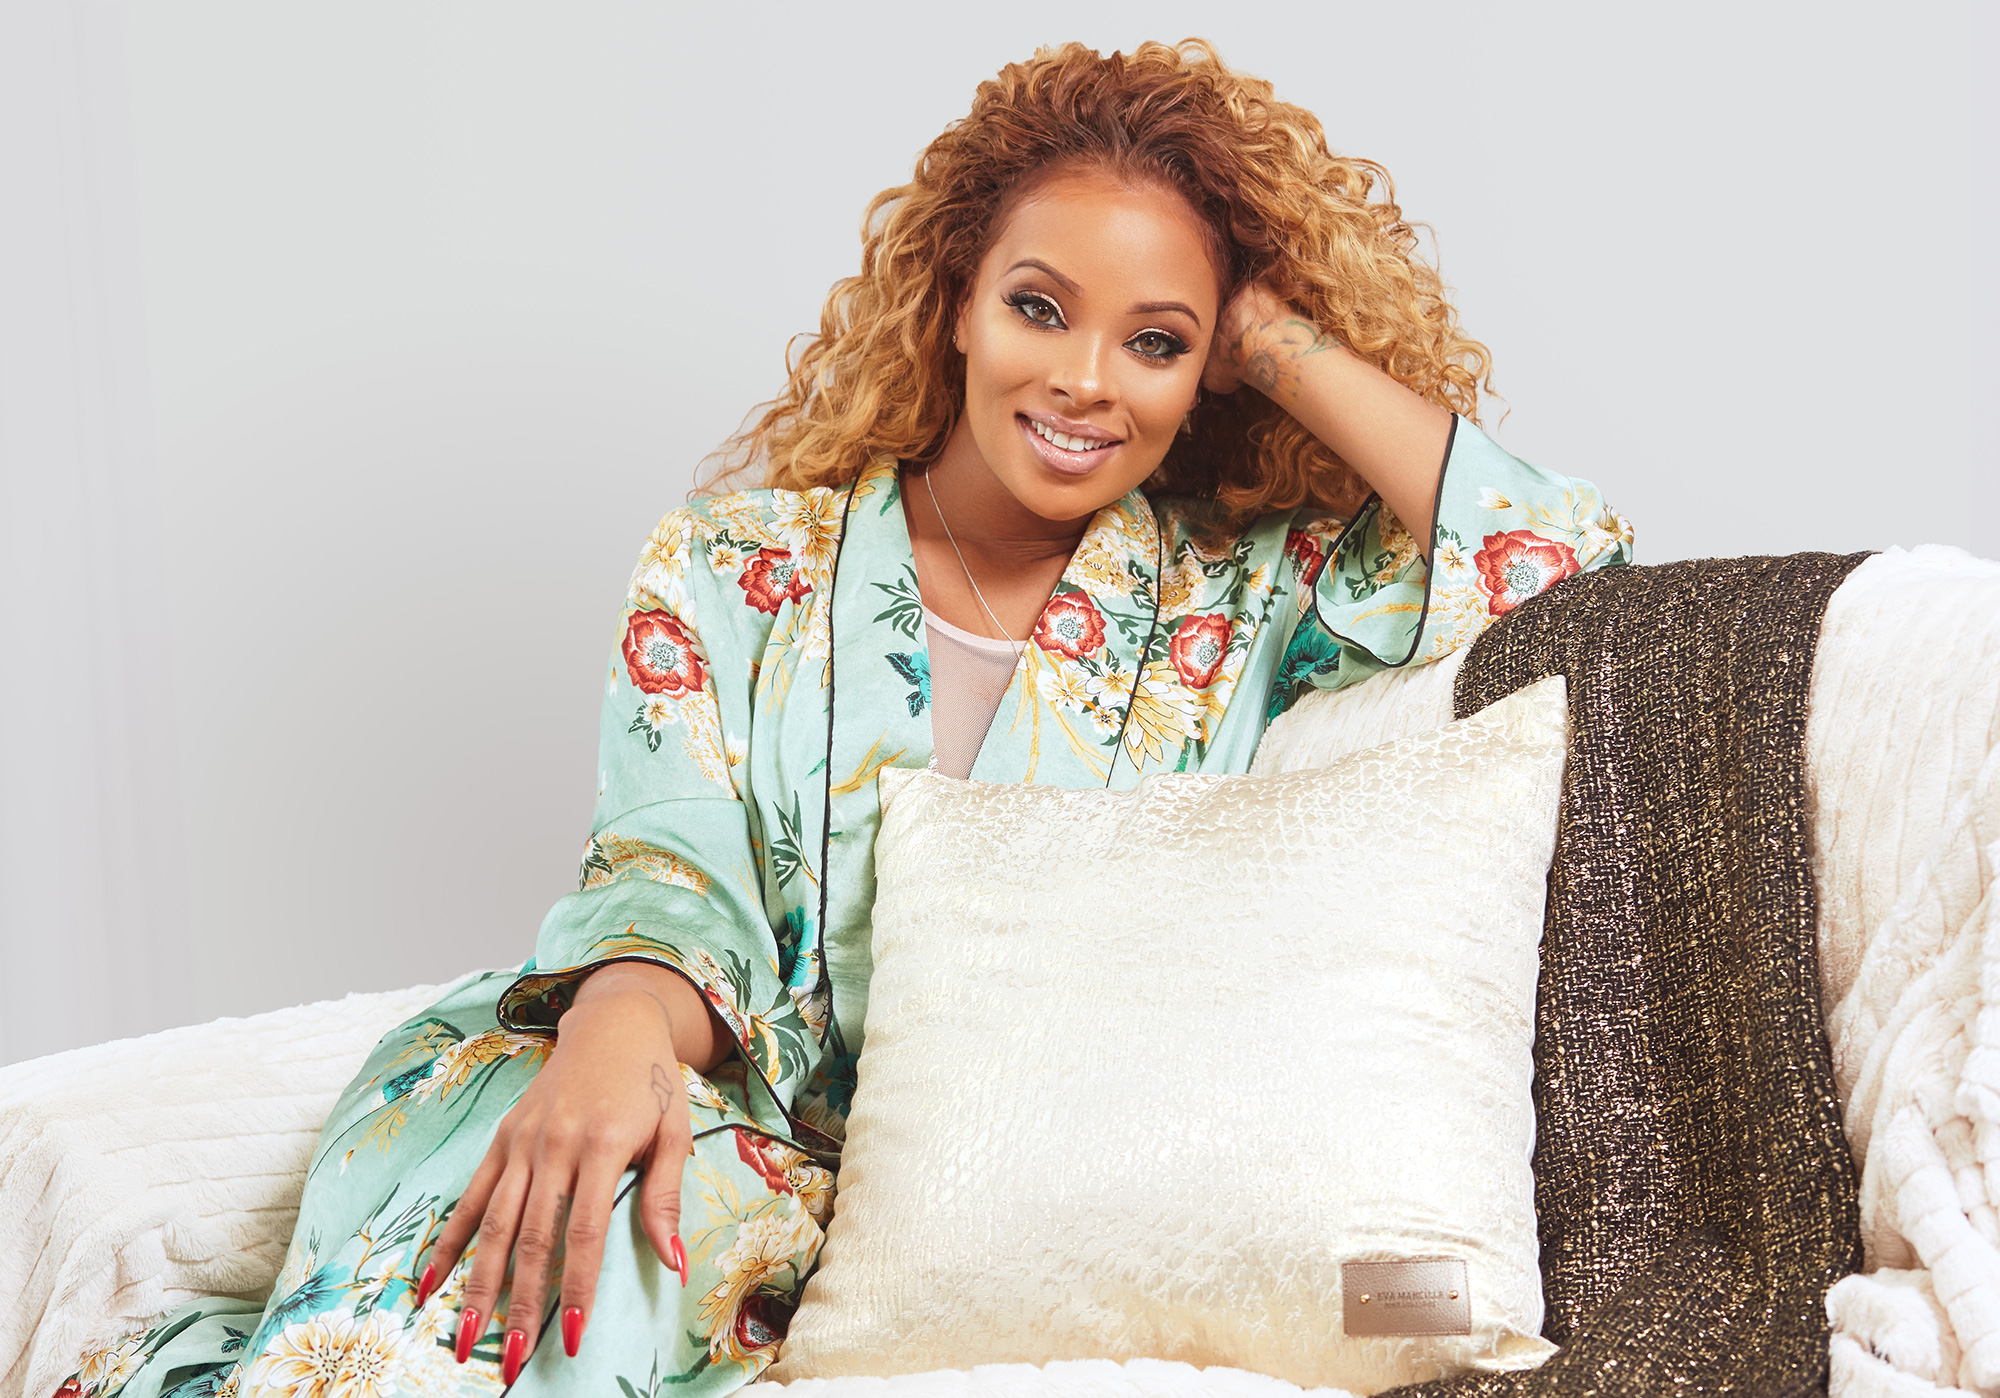 eva-marcille-makes-fans-laugh-with-old-school-mamas-jokes